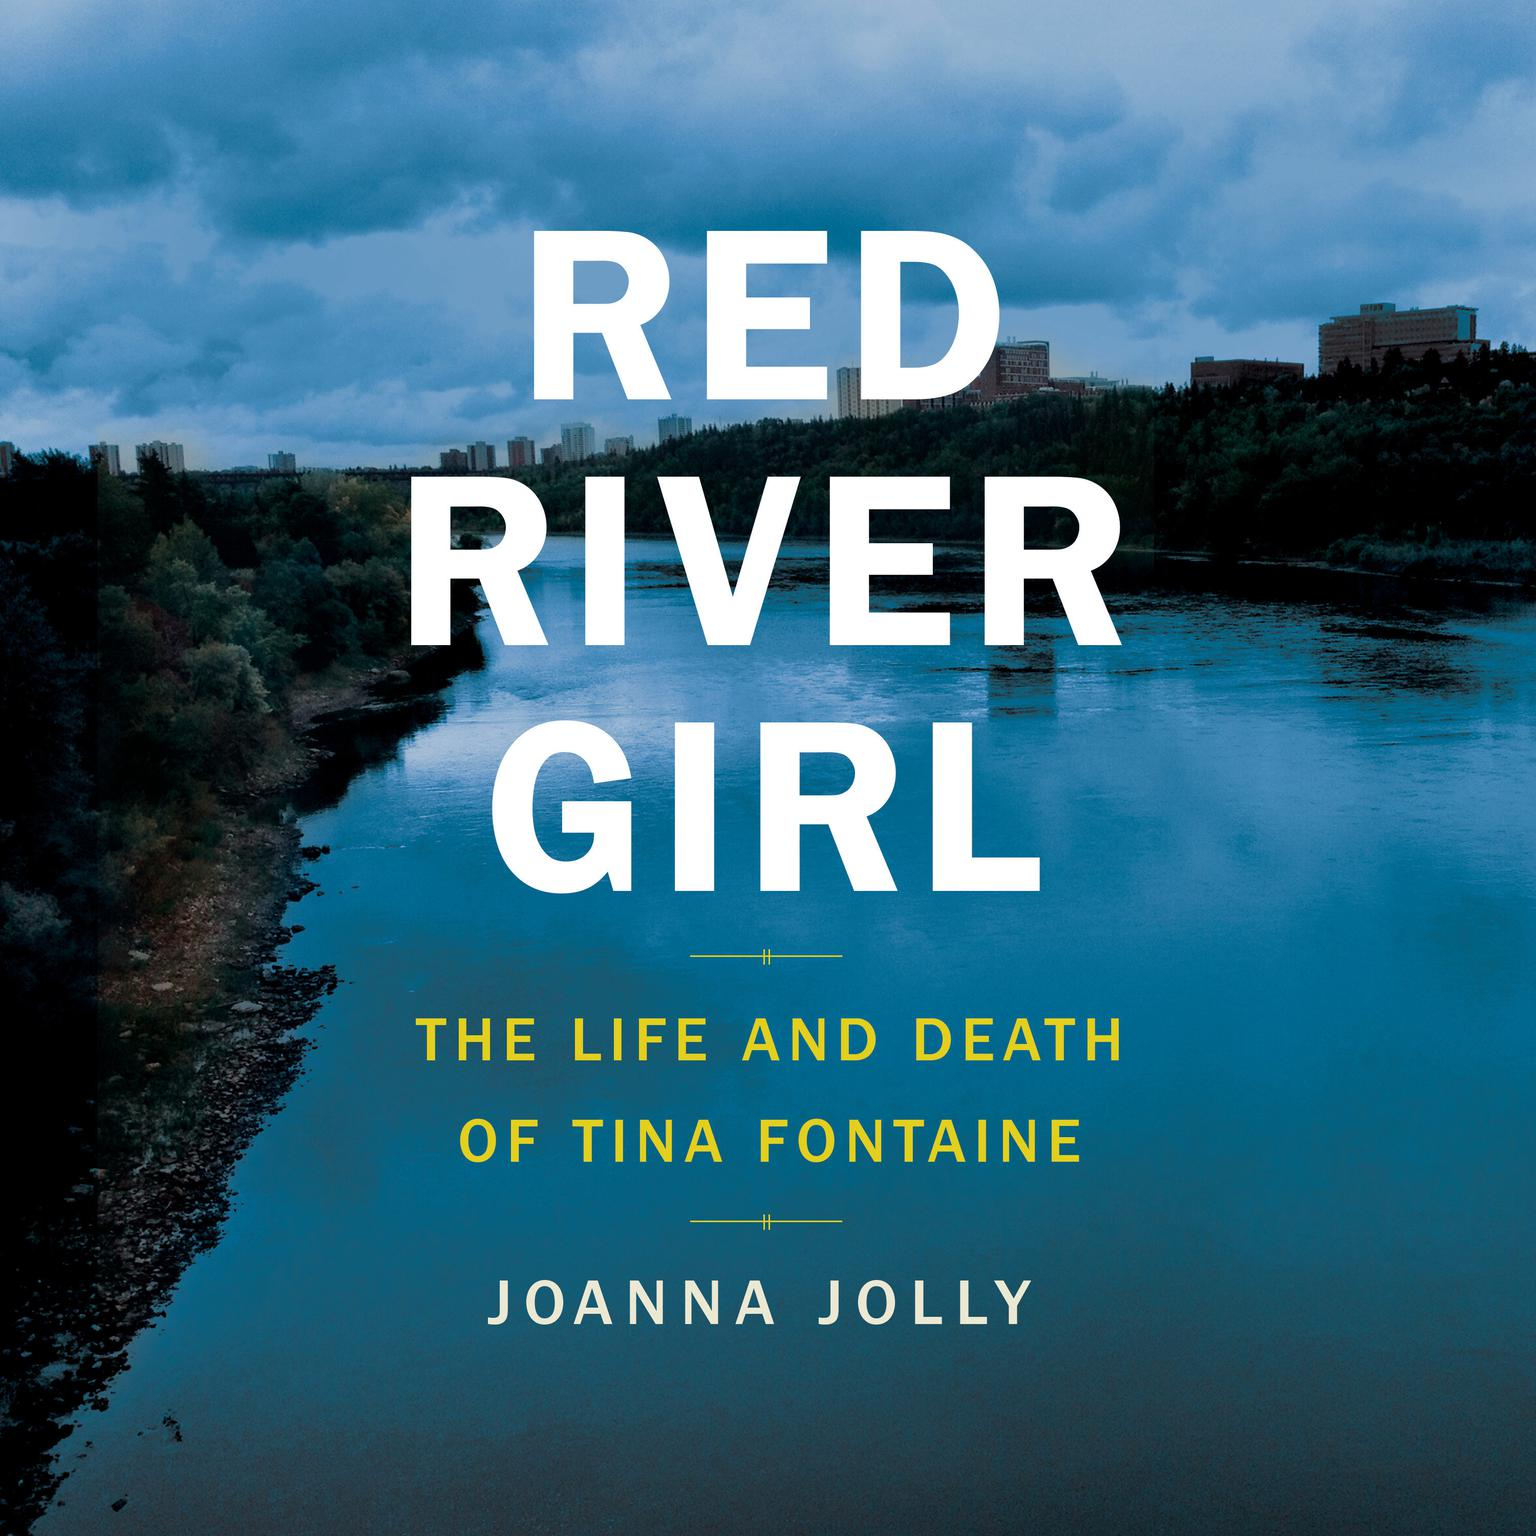 Red River Girl: The Life and Death of Tina Fontaine Audiobook, by Joanna Jolly